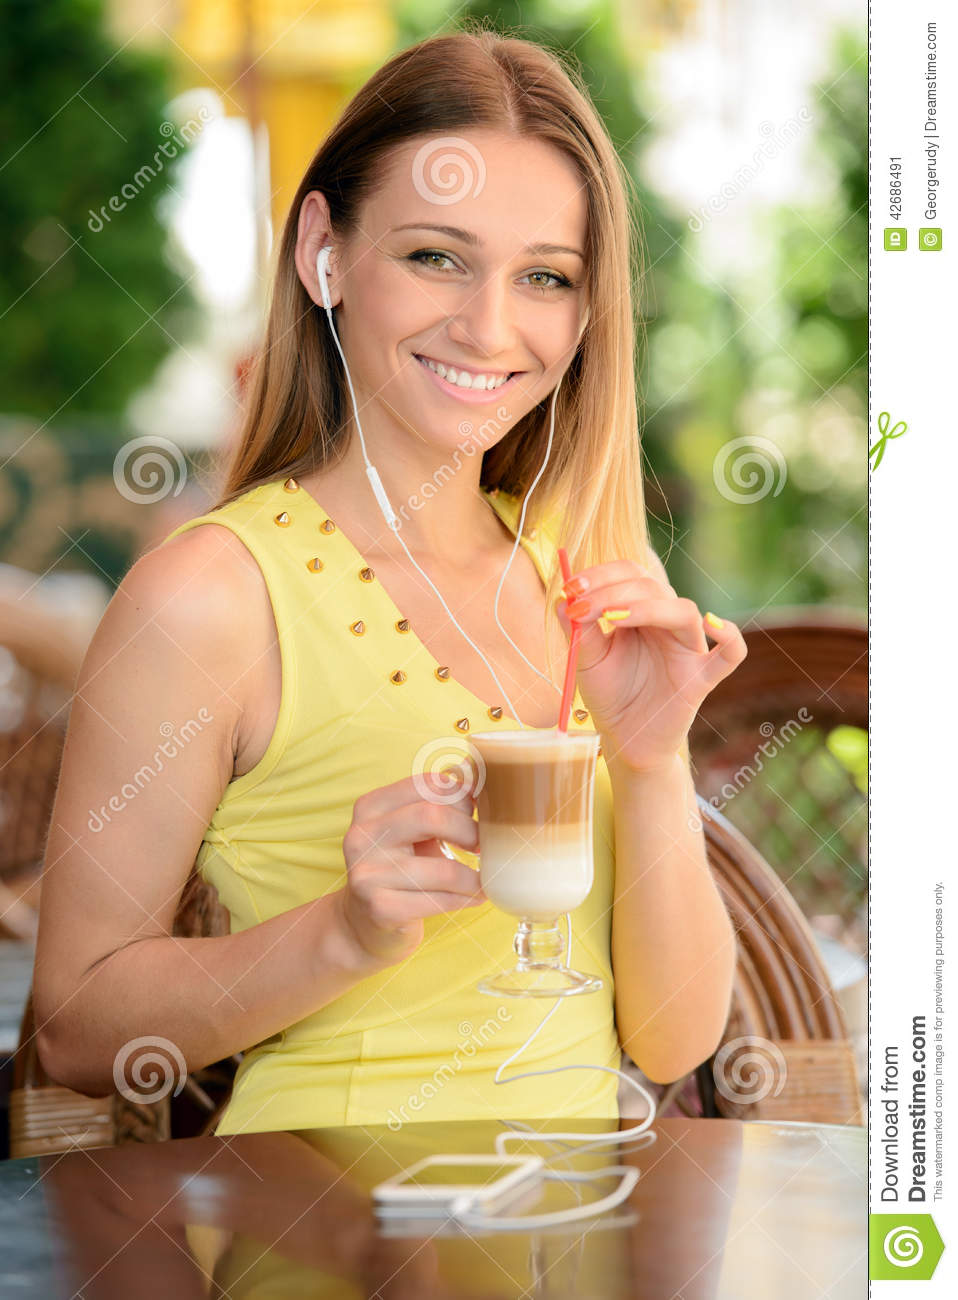 Woman In Cafe Stock Photo - Image: 42686491